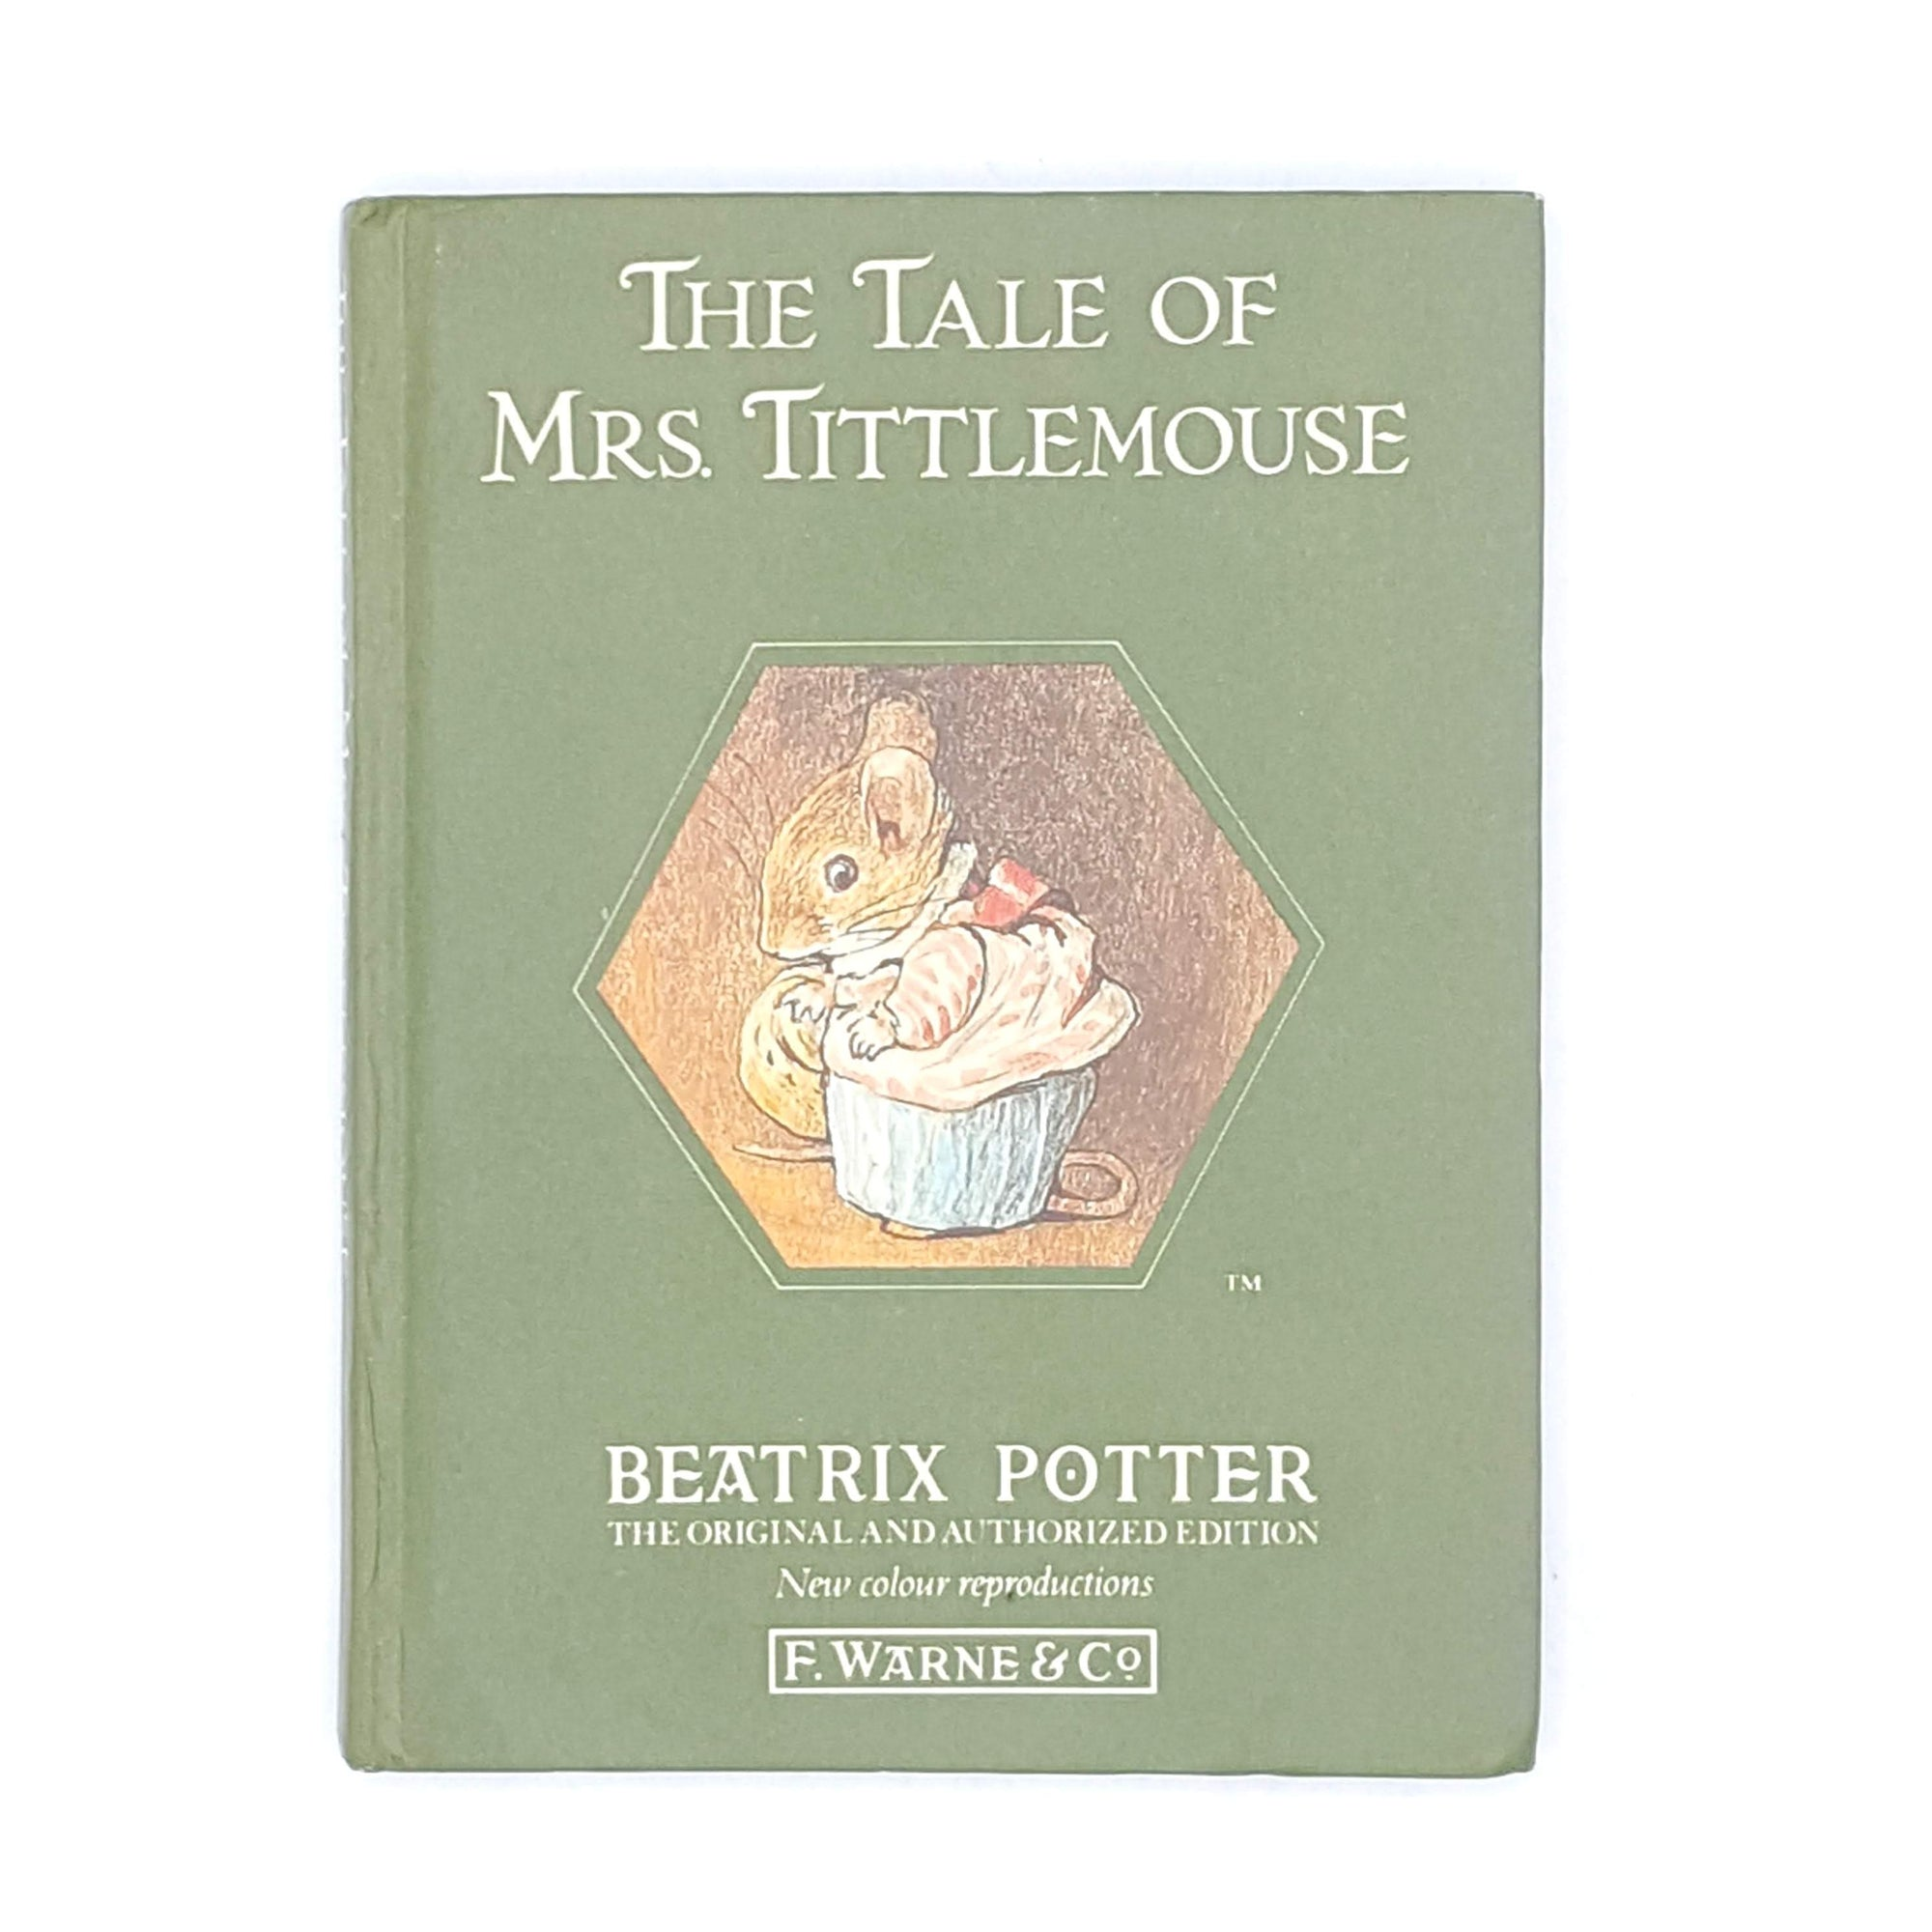 old-beatrix-potter-books-vintage-antique-green-thrift-mrs-tittlemouse-country-house-library-childrens-decorative-classic-patterned-